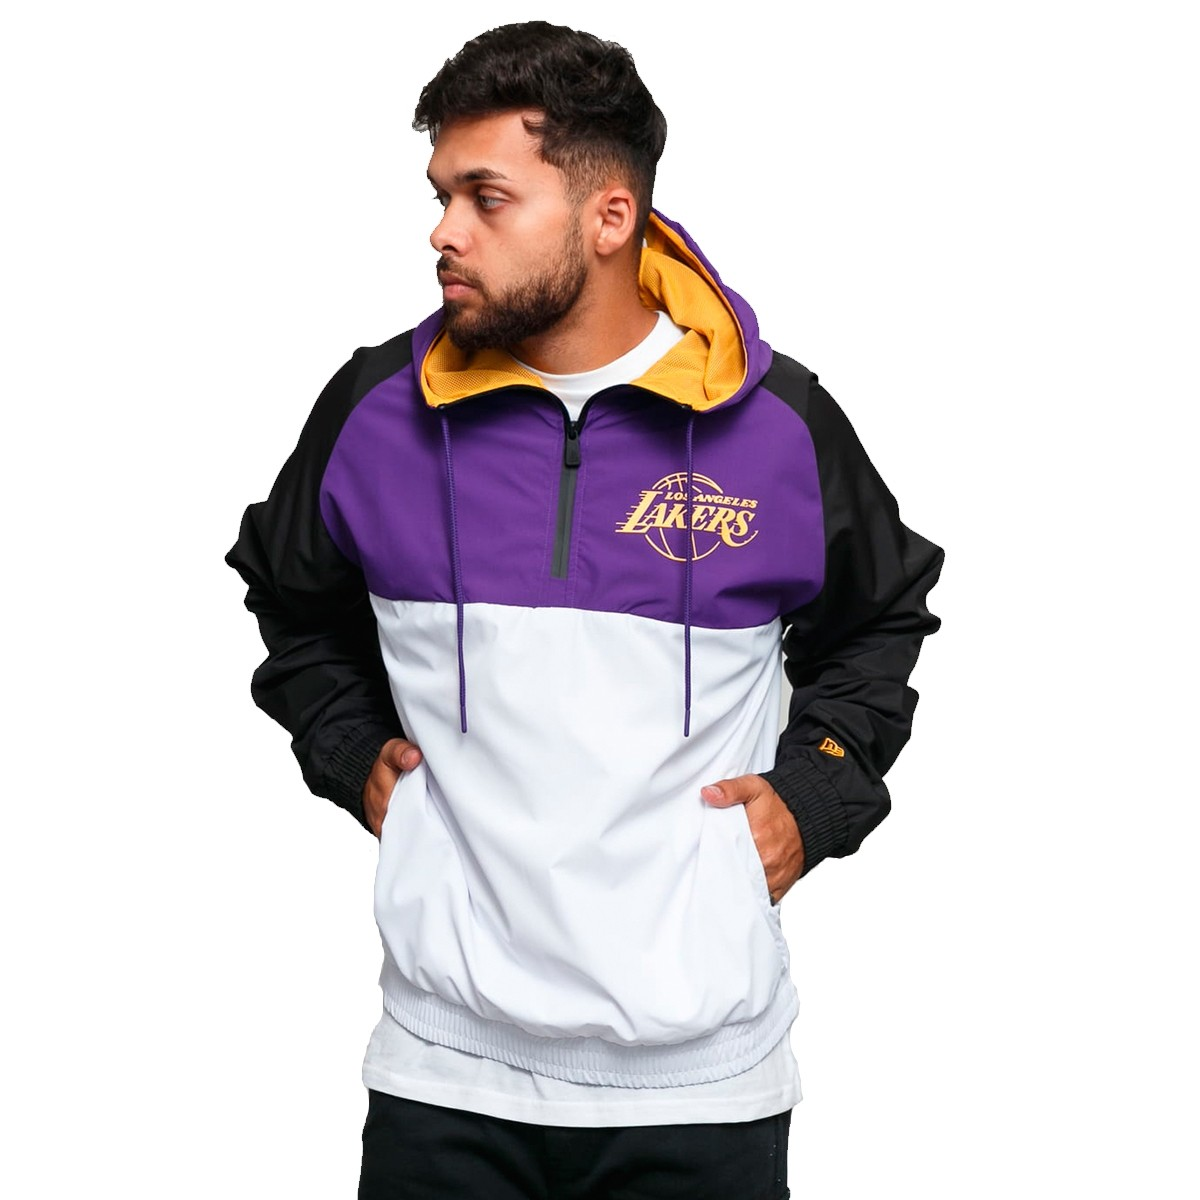 New Era Windbreaker Jacket 'Lakers'